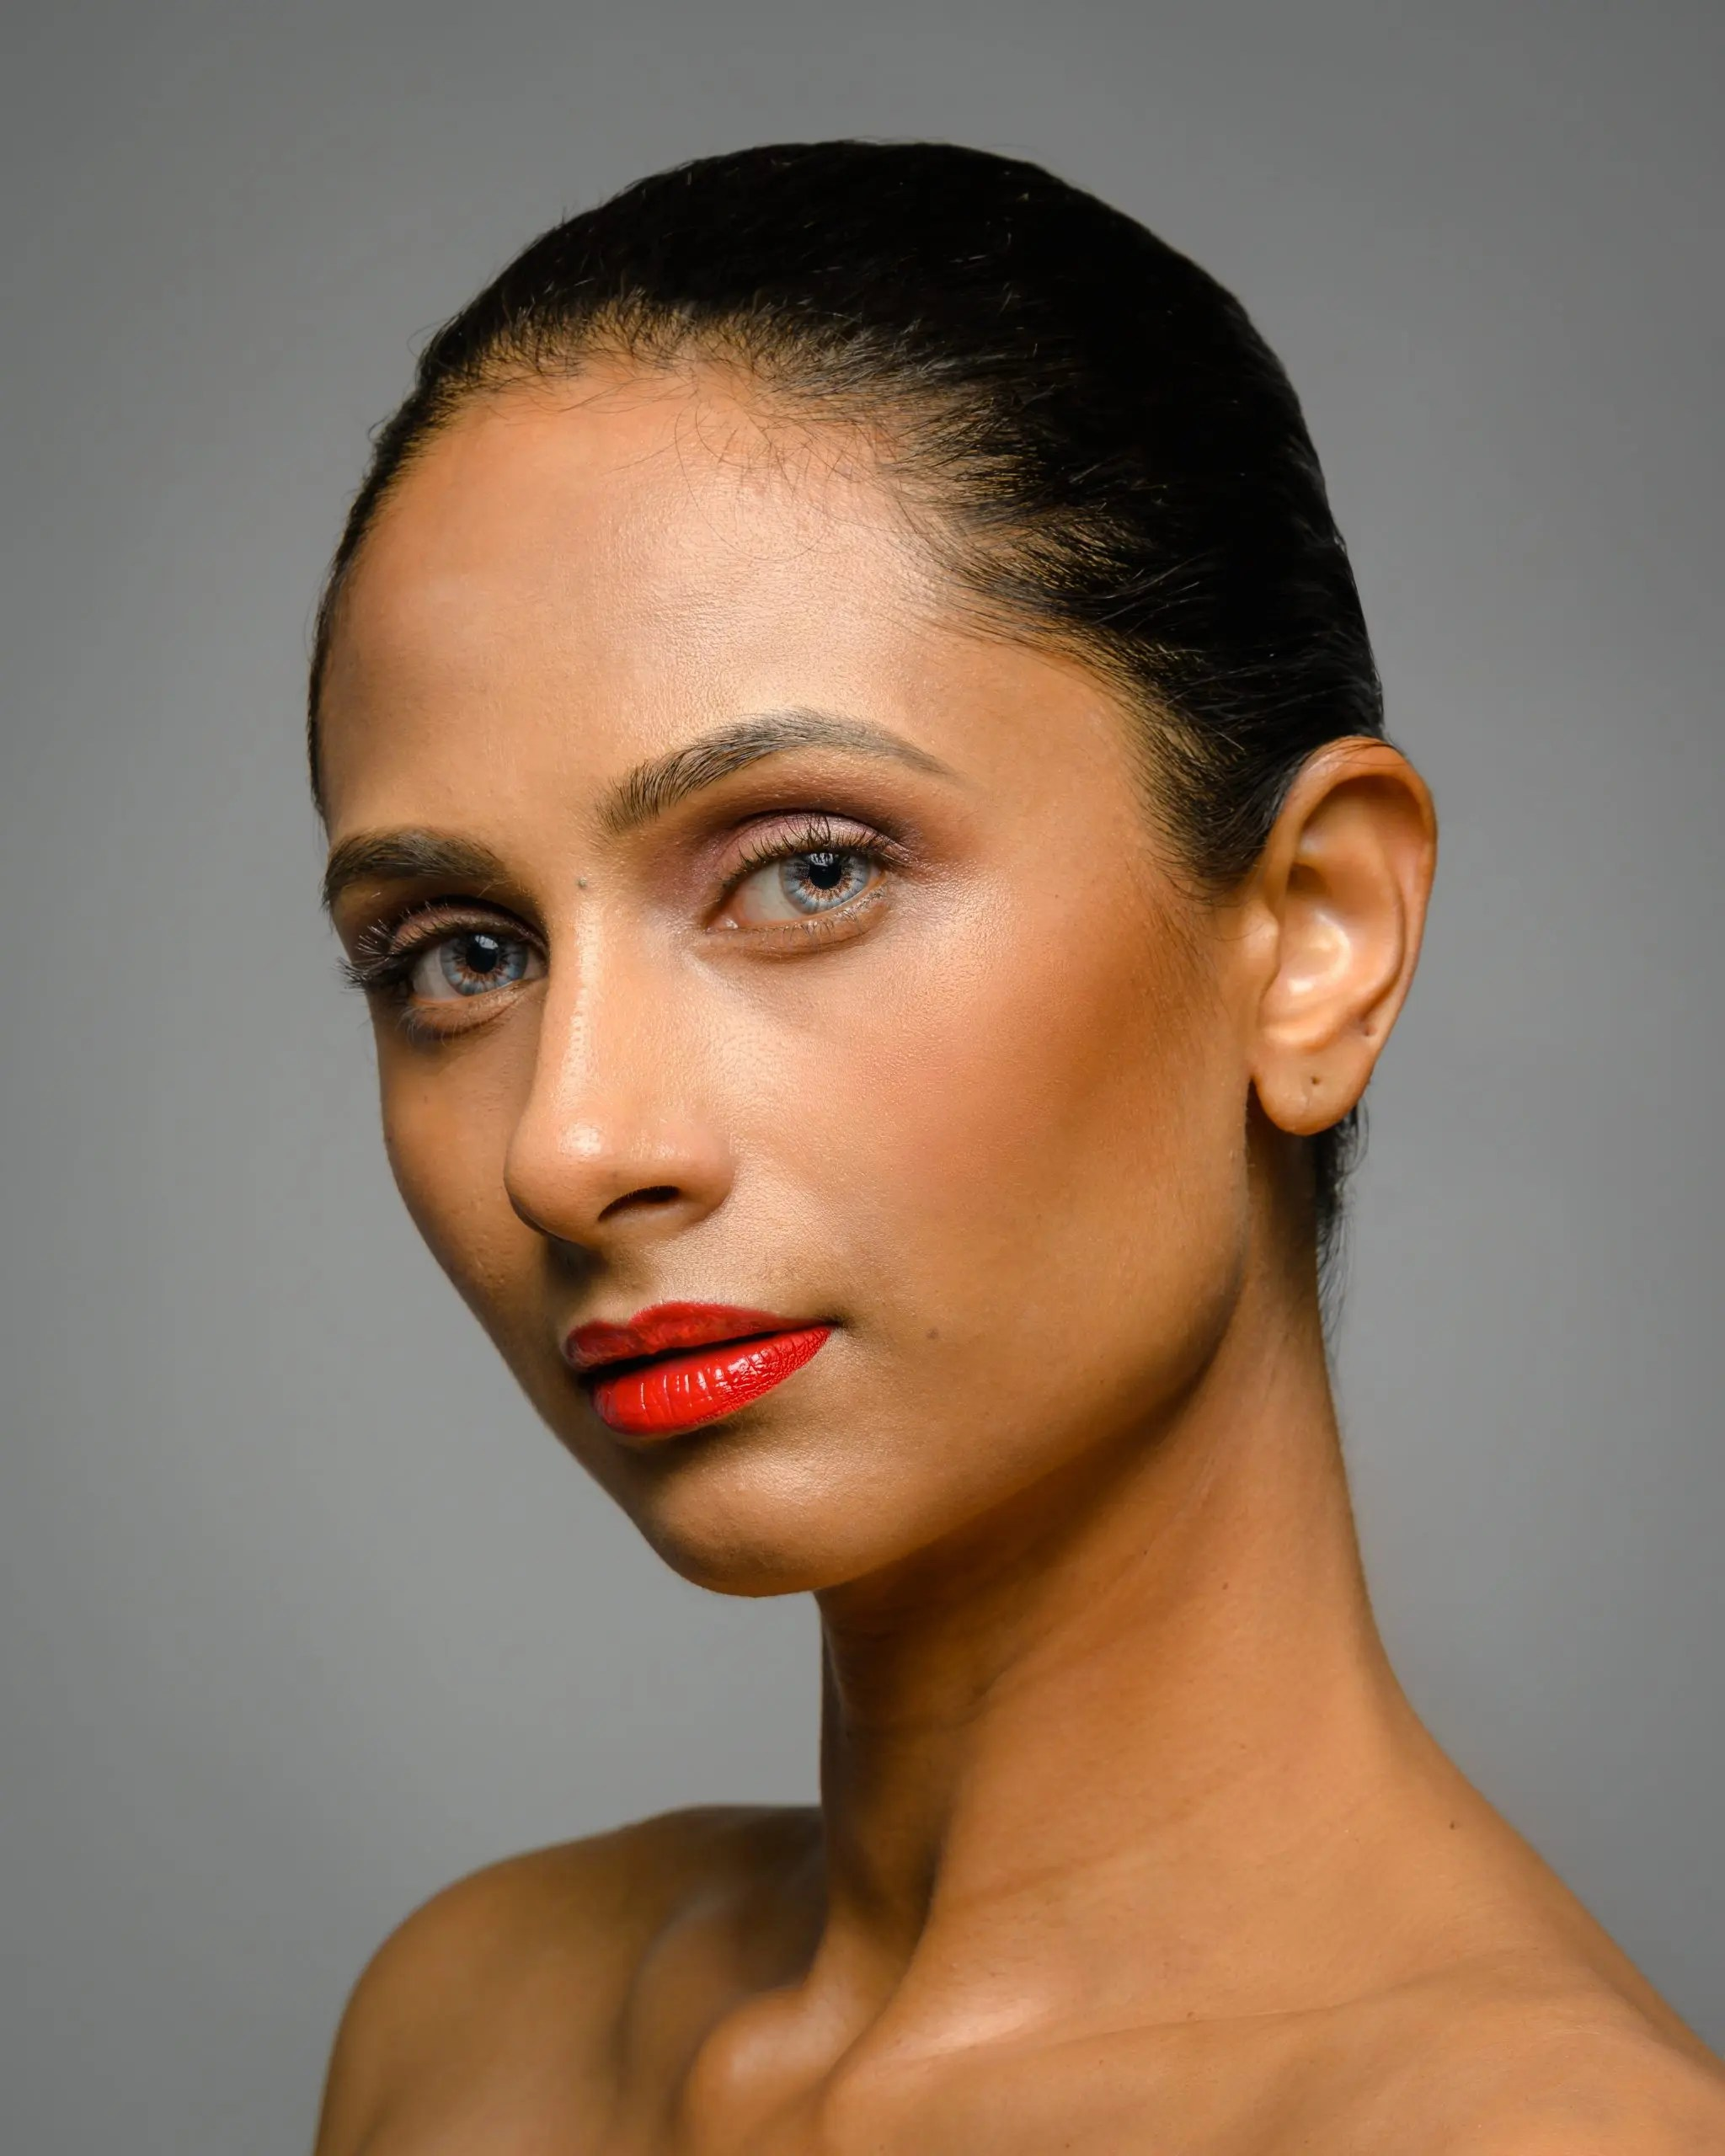 Studio photography with a female model posing for beauty and makeup headshots with hair slicked back in a tight bun.